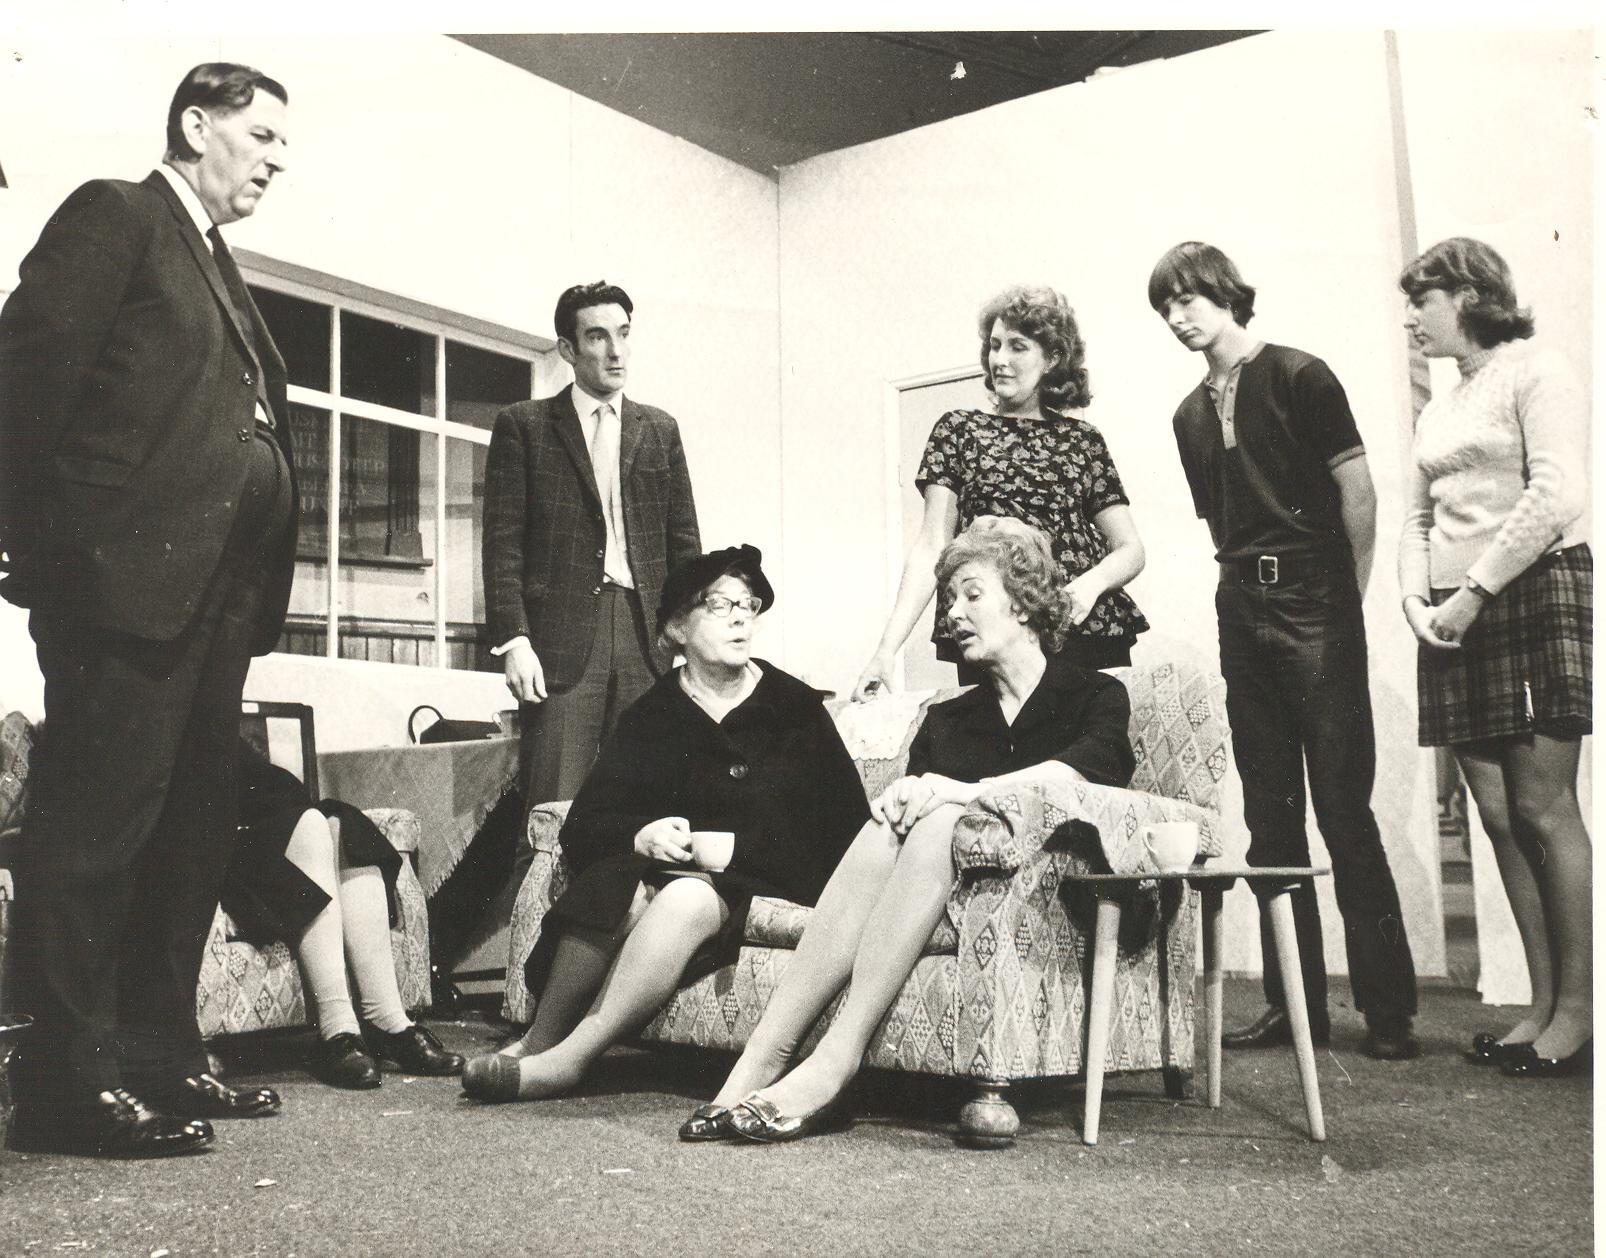 1970 Riding Mill Drama Club, Celebration